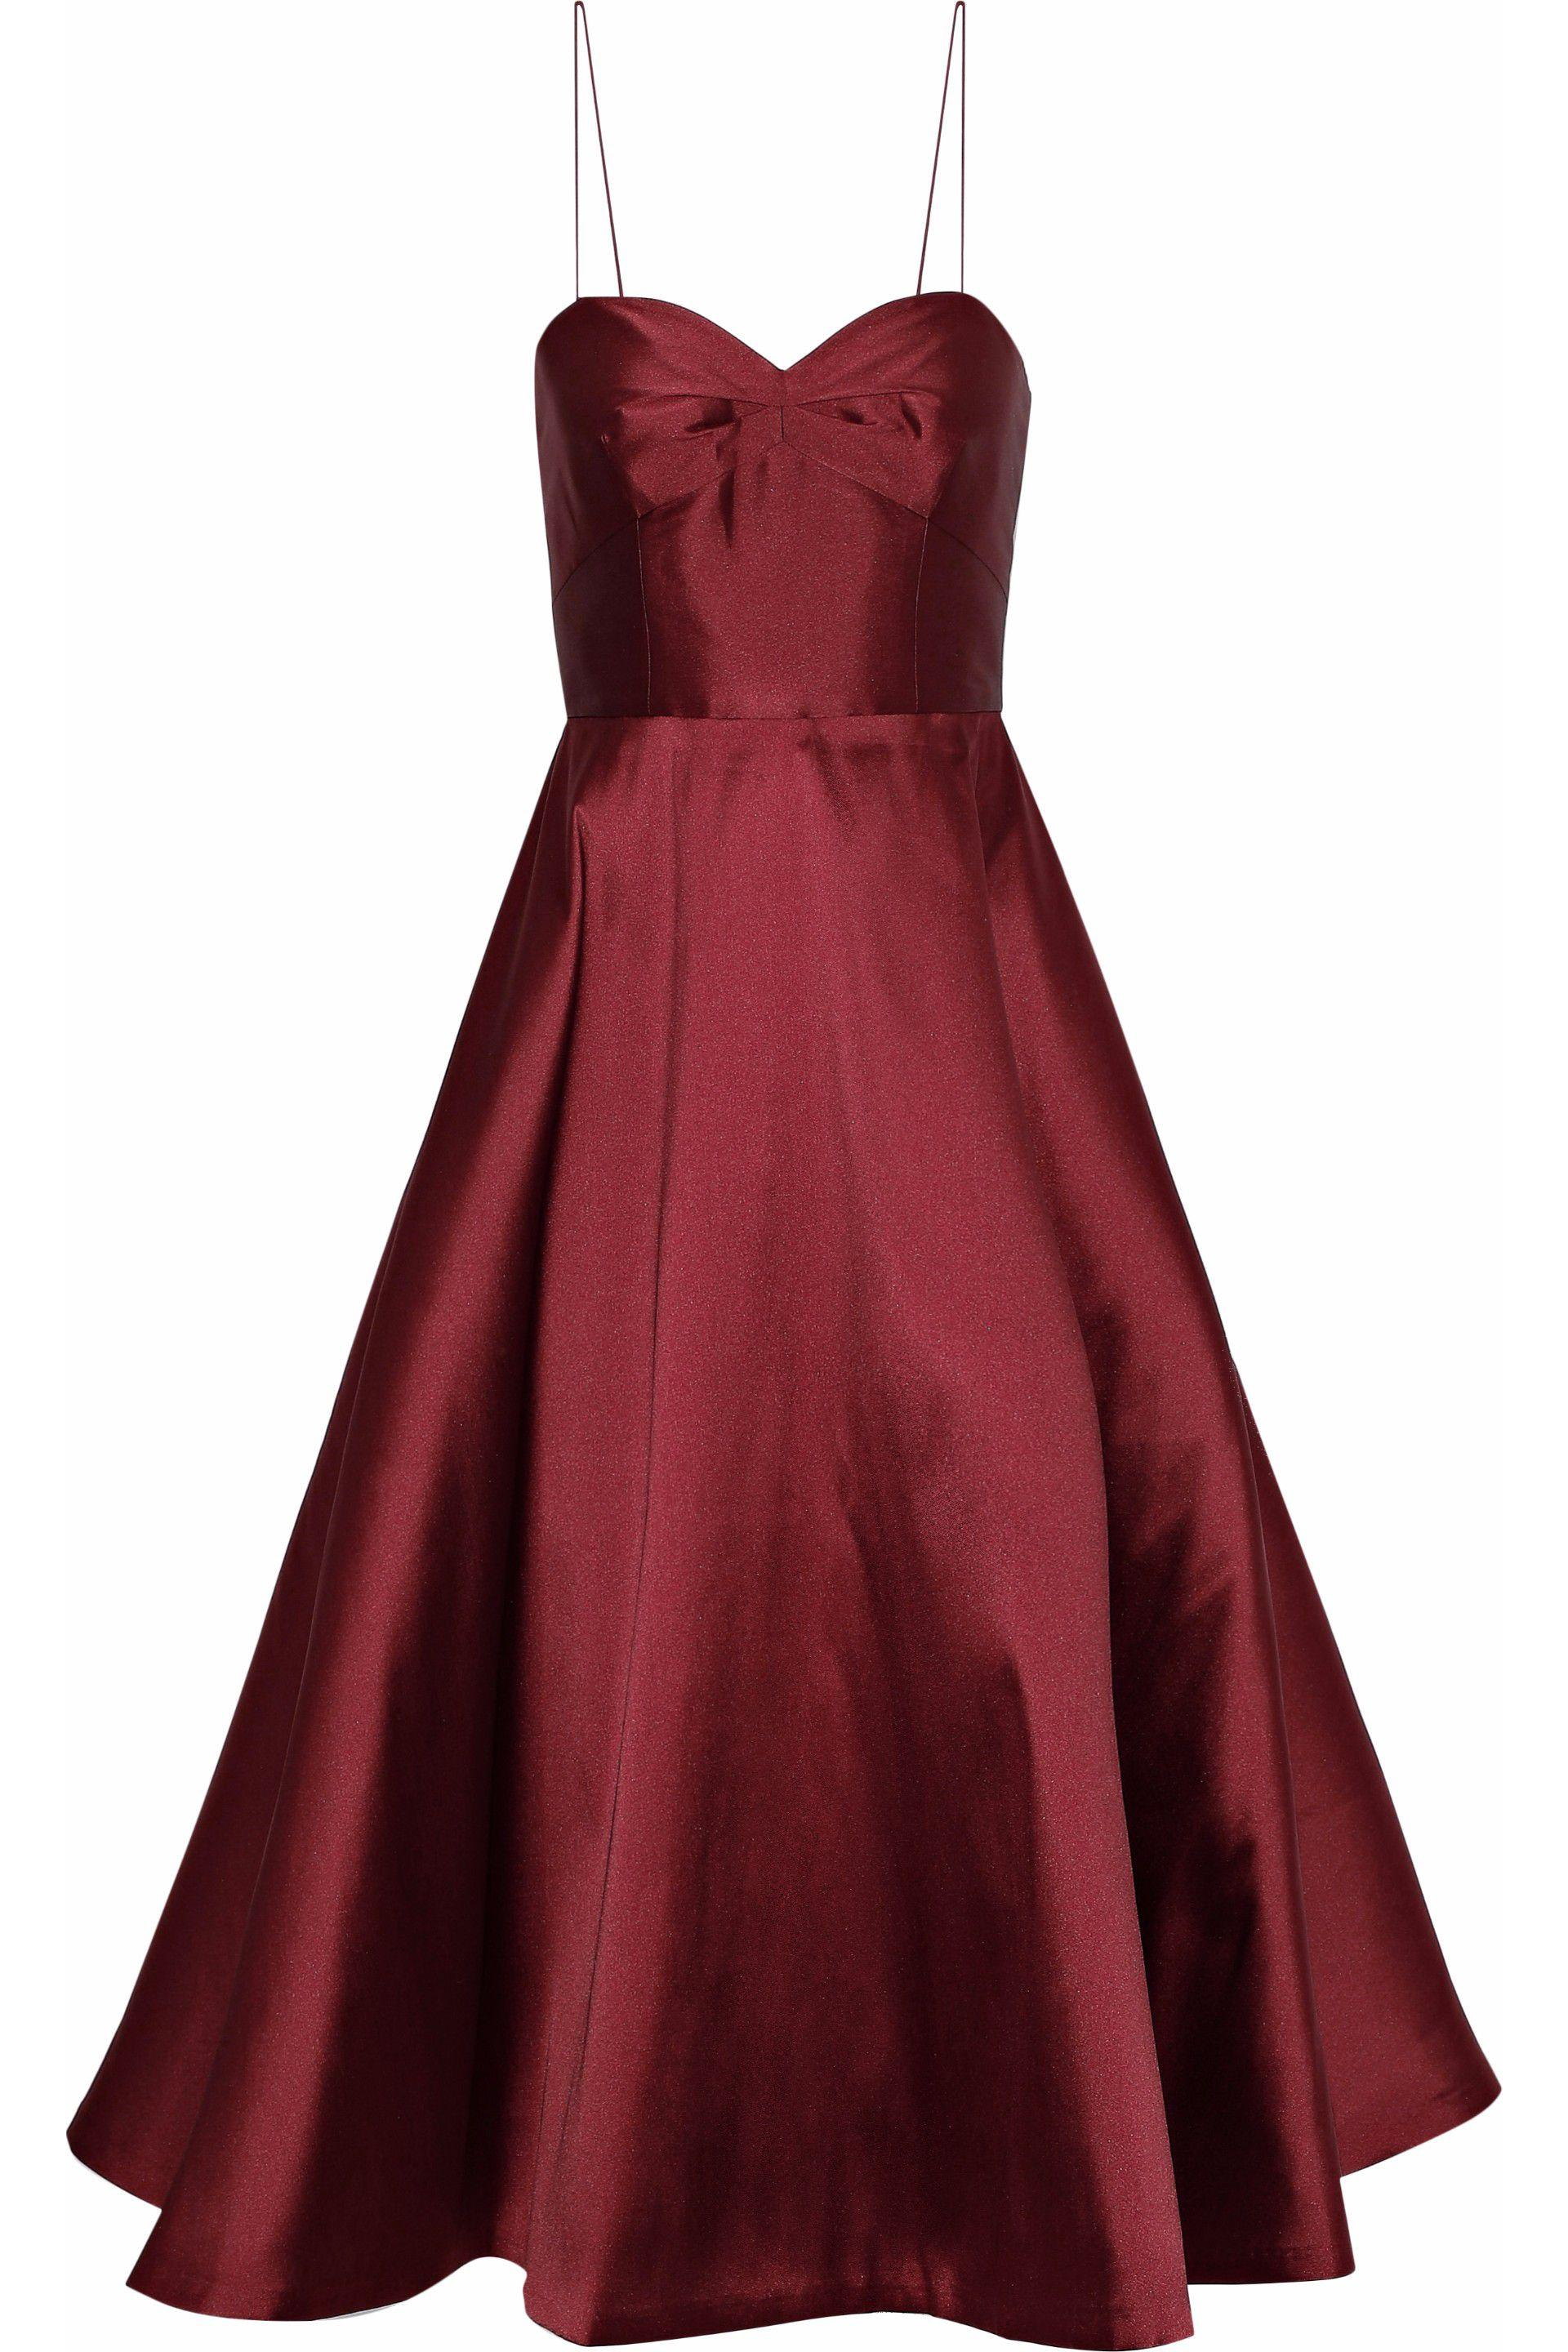 4762afdd13f5 sachin-babi-Burgundy-Woman-Flared-Duchesse-satin-Midi-Dress-Burgundy.jpeg